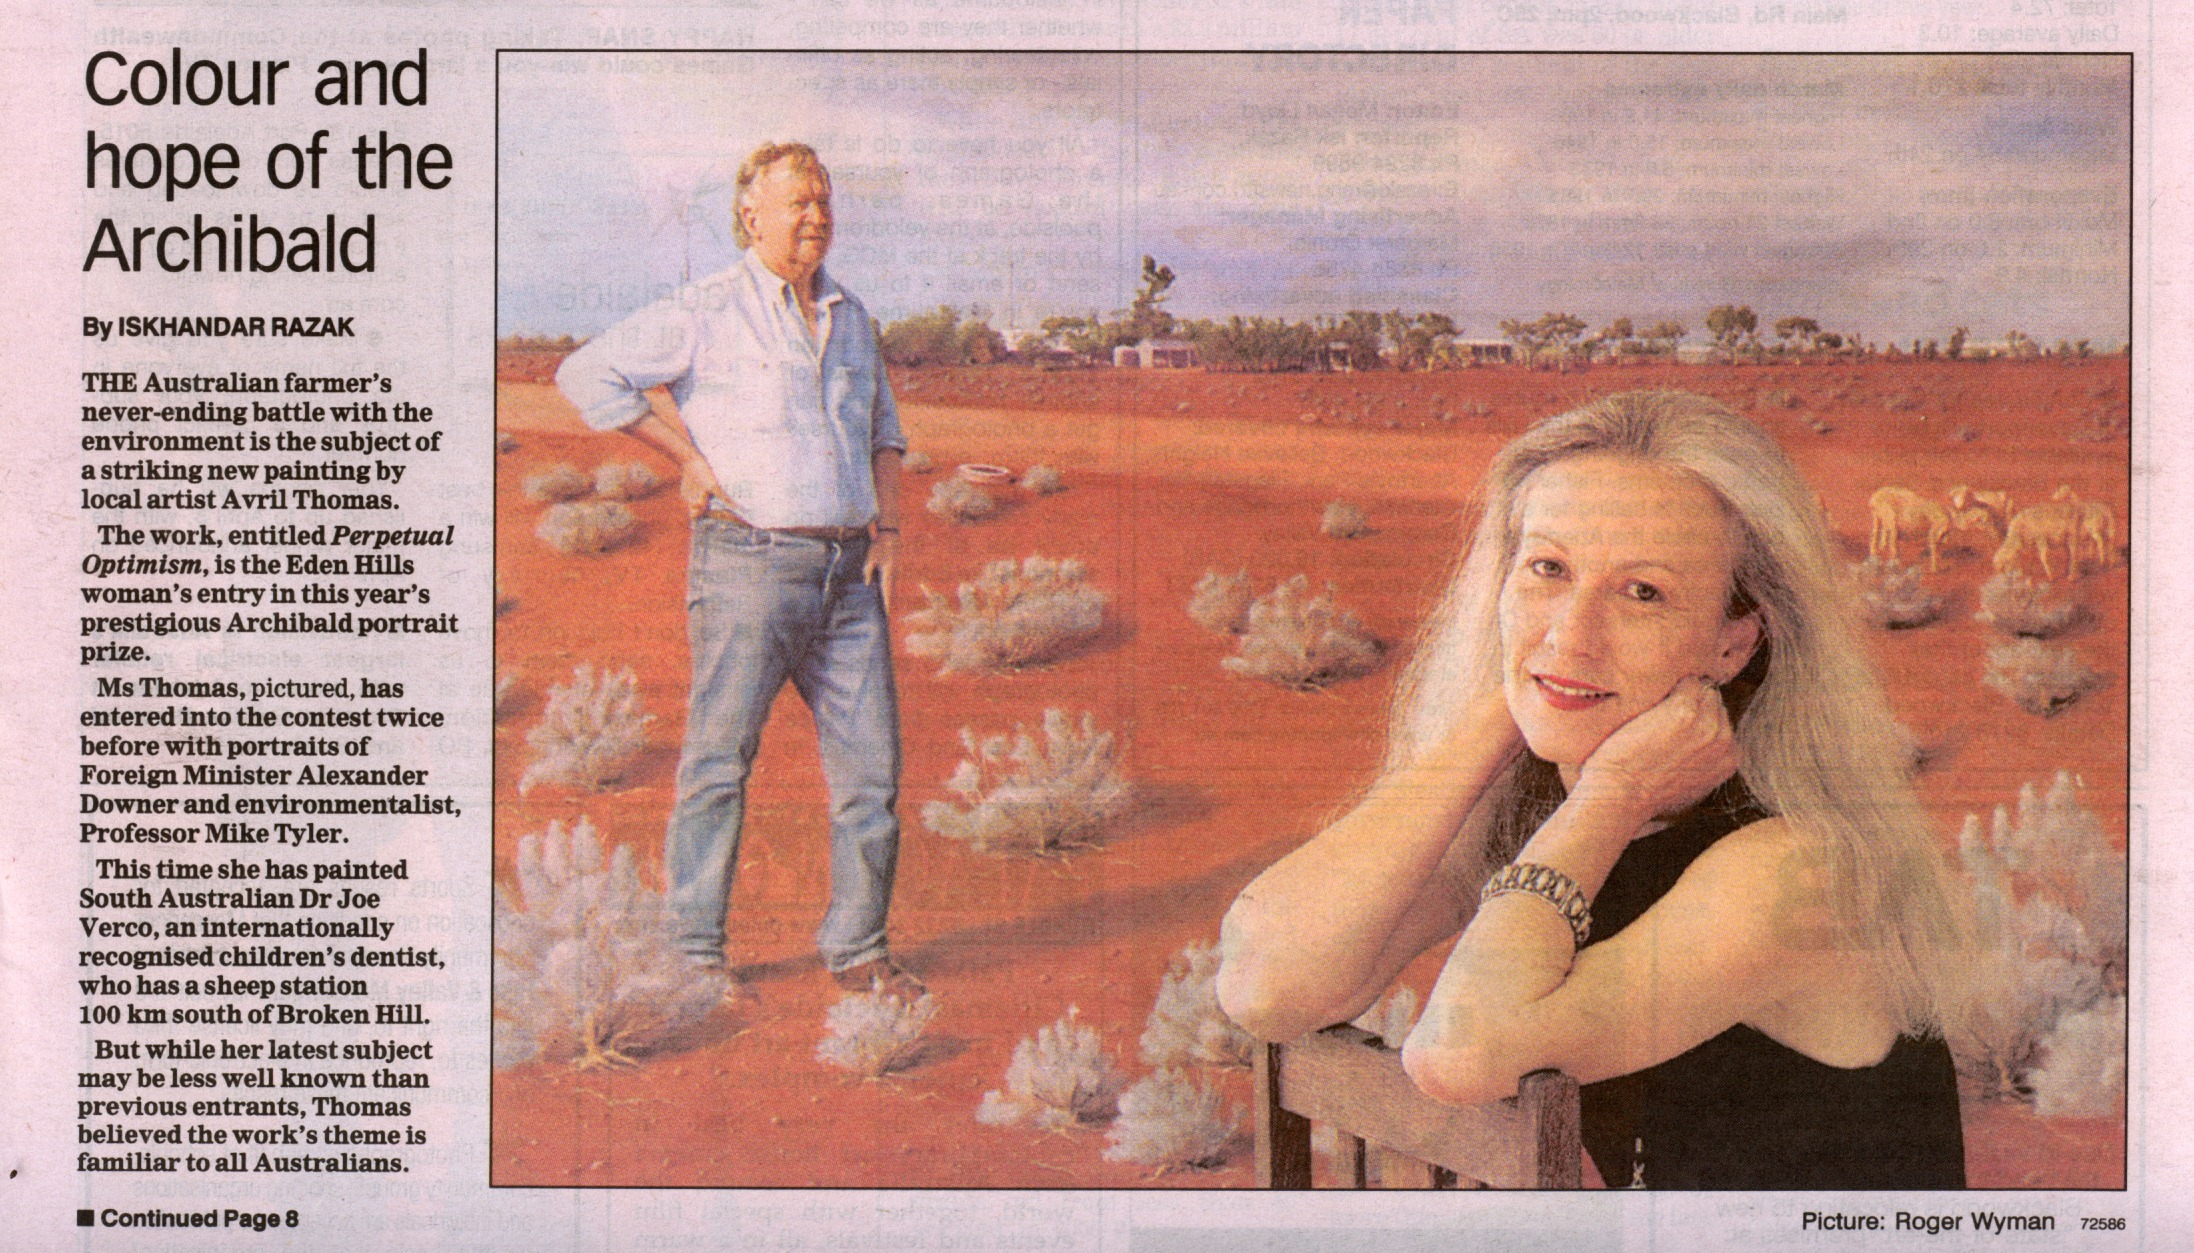 News Article,acclaimed artist, Adelaide Art Gallery, adelaide artist, Adelaide Hills portrait artist, Adelaide portrait artist, Archibald, artist, Artist in Adelaide Hills, Artist near Mclaren Vale, Artist near Victor Harbor, Artist near Willunga, Avril Thomas, Avril Thomas Gallery, Avril Thomas studio, Charcoal portrait, commissions open, contemporary artist, Doug Moran, drawing, drawn portraits, Fleurieu Art Gallery, Fleurieu Peninsula Artist, Gallery near Mclaren Vale, Gallery near Victor Harbor, Gallery near Willunga, masterpiece, National Portrait Gallery, National Portrait Gallery Canberra, national talent, Oil Painting, painted portrait, painted portraits, Portia Giech, portrait artist, Portrait artist near Adelaide, Portrait Artists, Portrait artists Adelaide, portrait artists Australia, portrait artists modern, portrait artists near me, portrait artists pencil, portrait commission, portrait painting, portraits, portraiture in Australia, Realist artist, sketches, south australian artist, south australian portrait